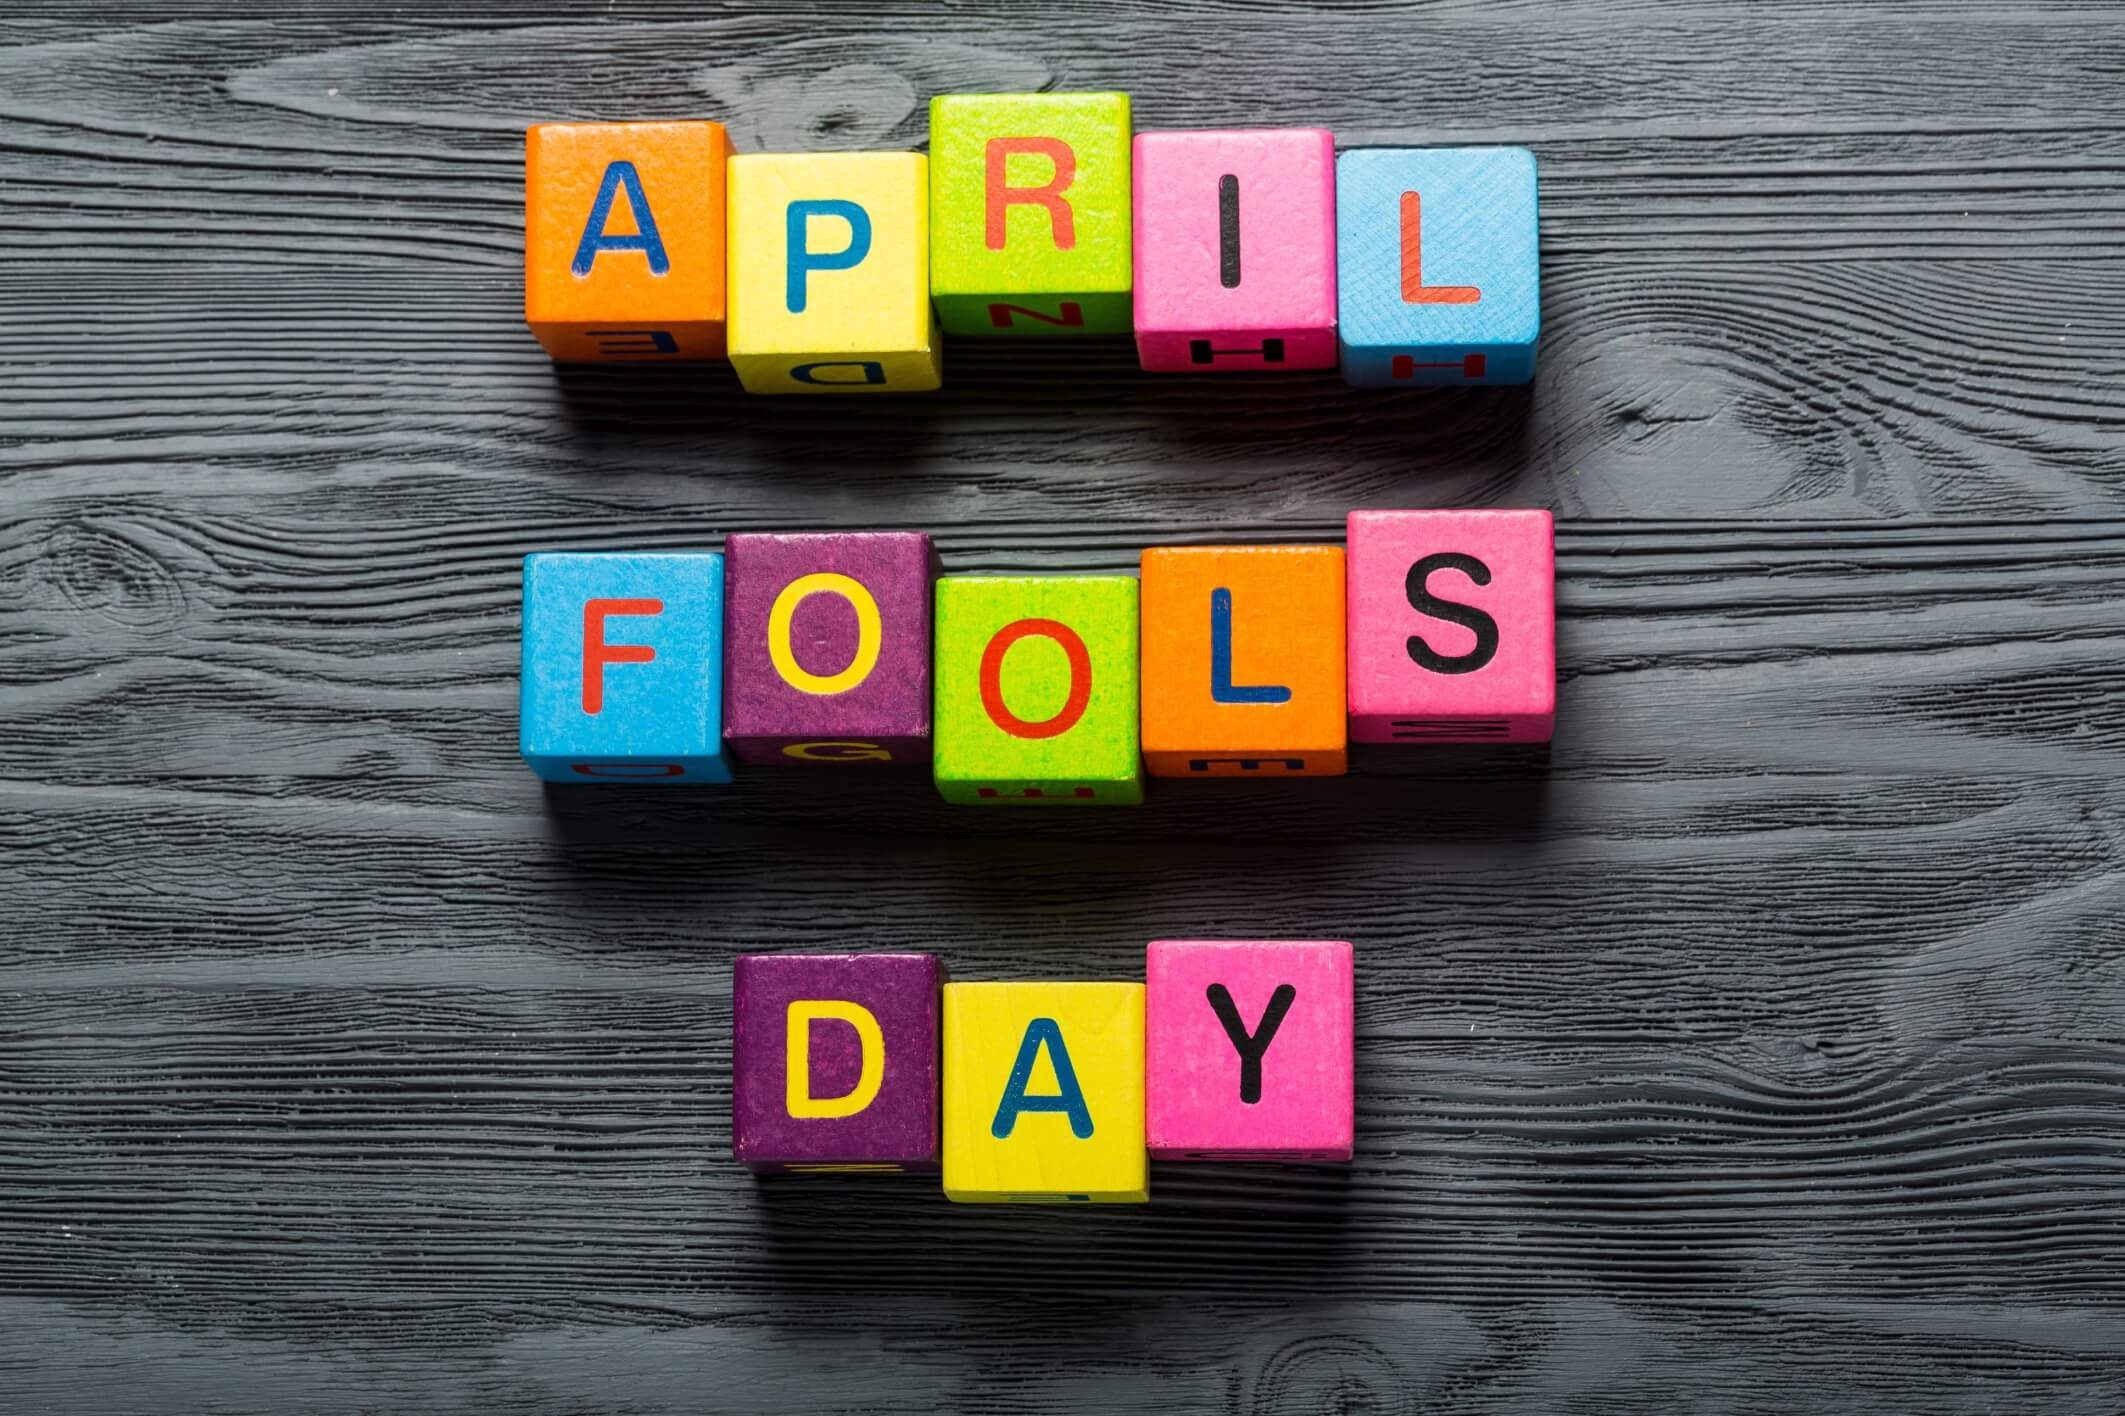 april fools day wishes text on dice image desktop hd wallpaper